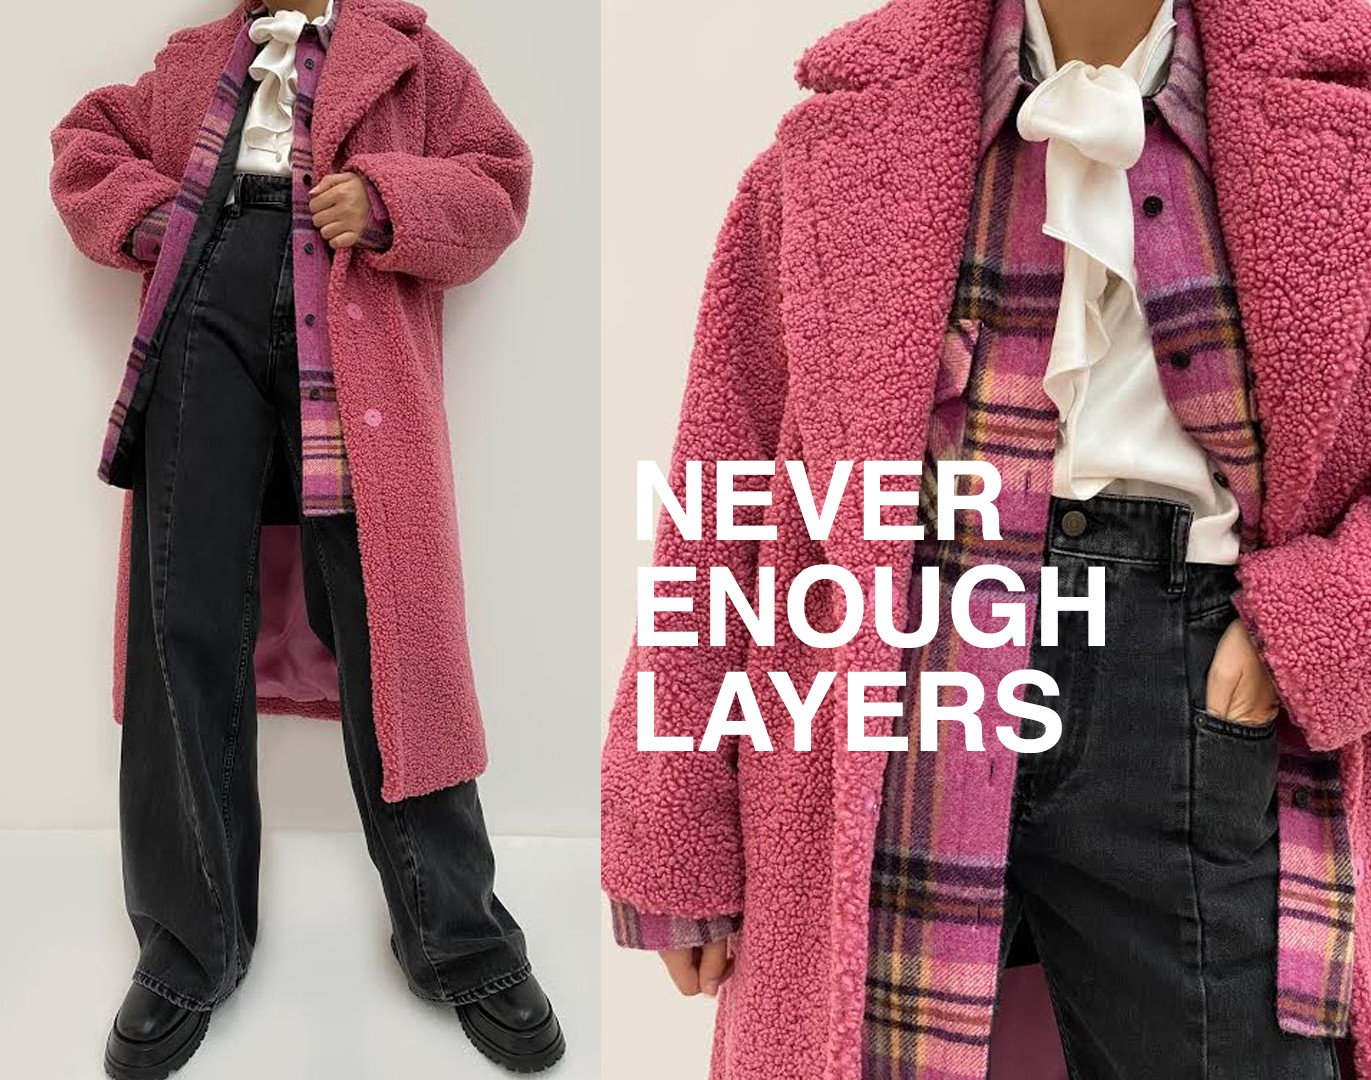 NEVER ENOUGH LAYERS